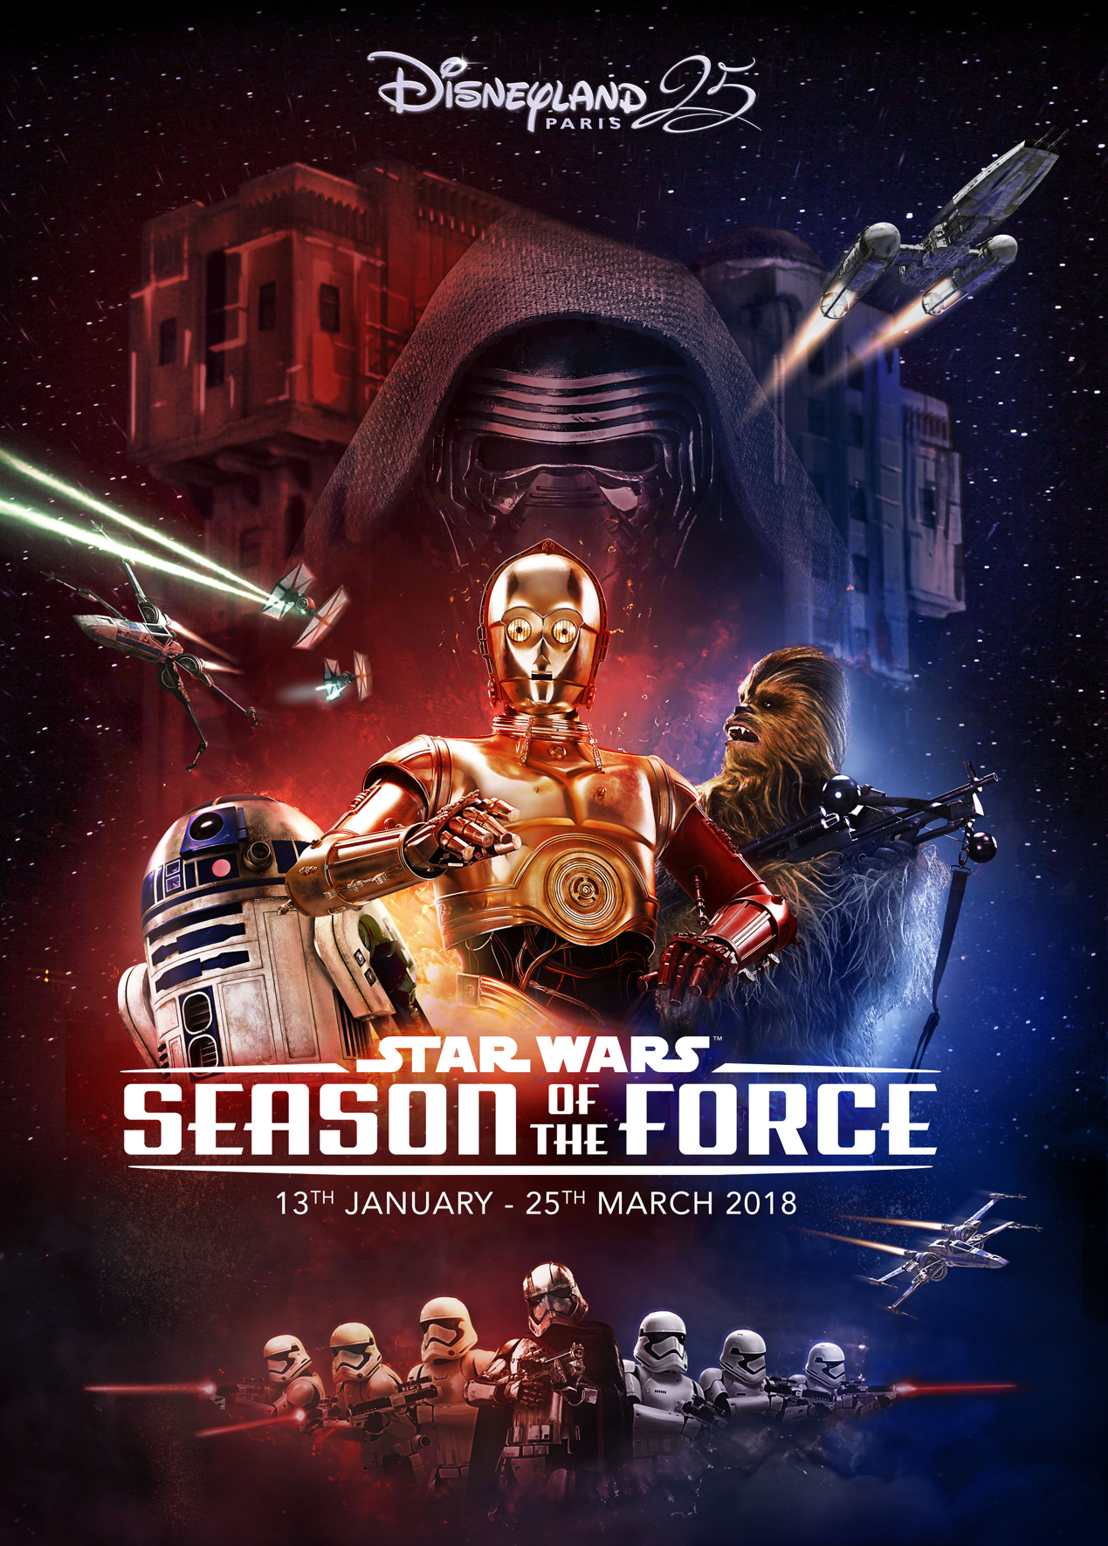 Het STAR WARS seizoen back in FORCE in Disneyland® Paris!